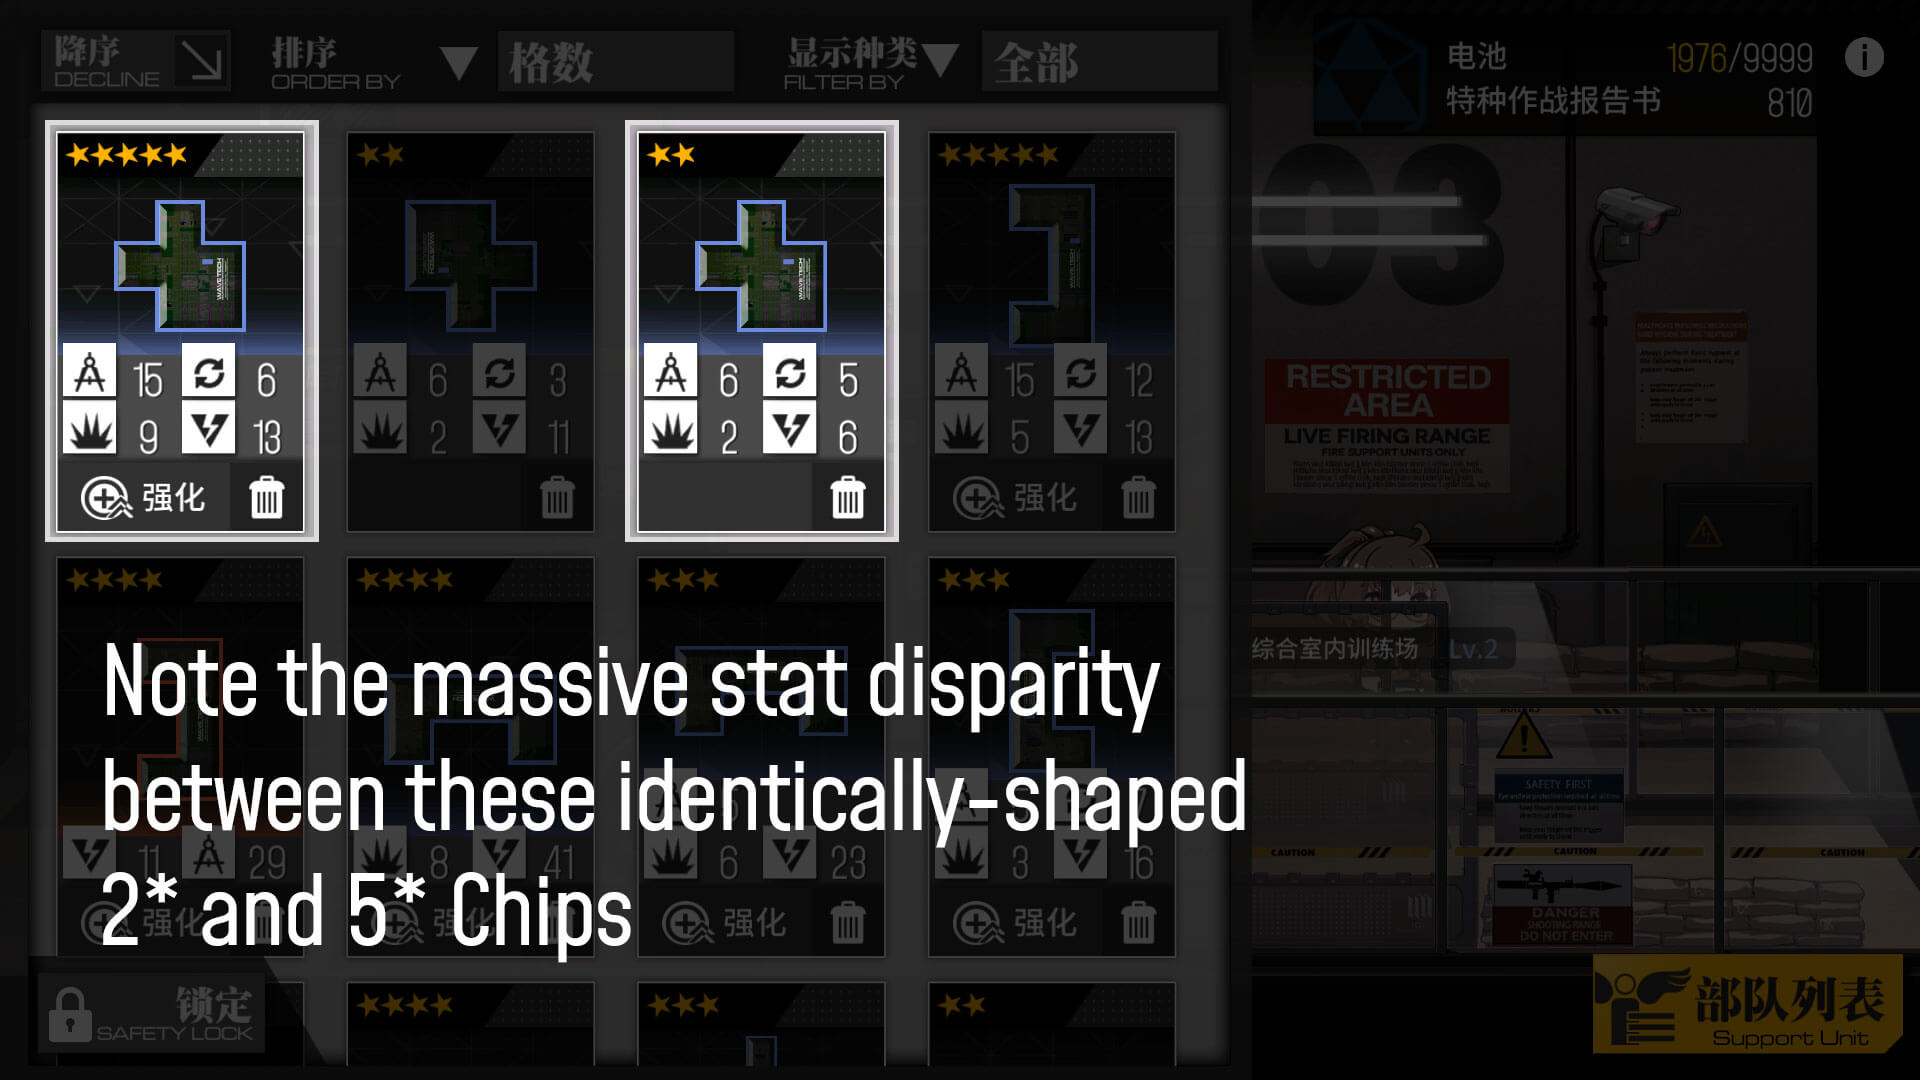 Comparison of a 2-star and 5-star chip with the same shape but wildly different stats.